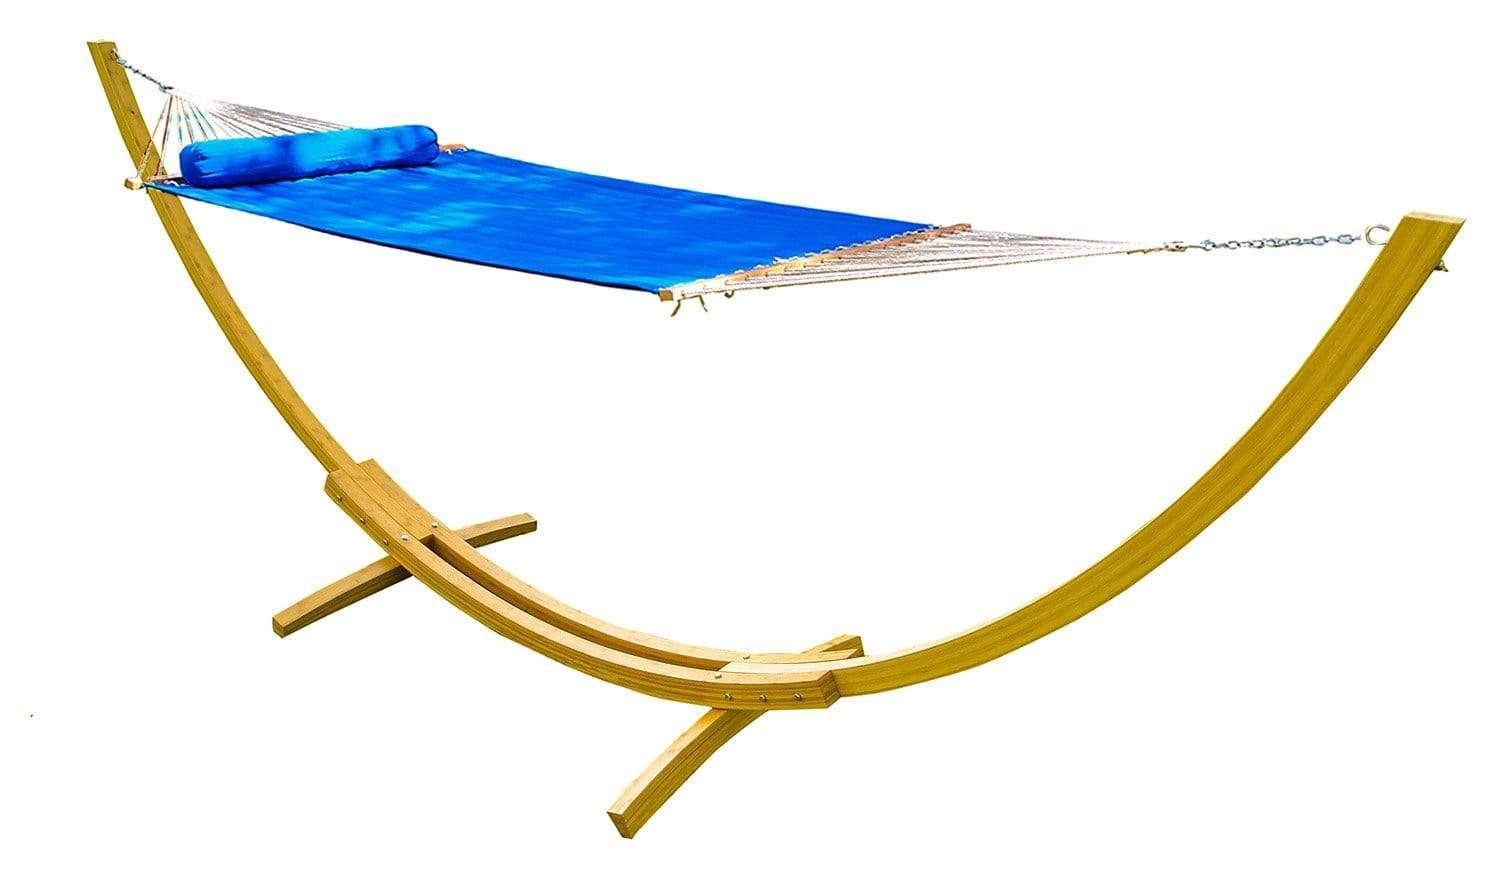 Hammock Universe Hammocks Olefin Double Quilted Hammock with Matching Pillow and Eco-Friendly Bamboo Stand